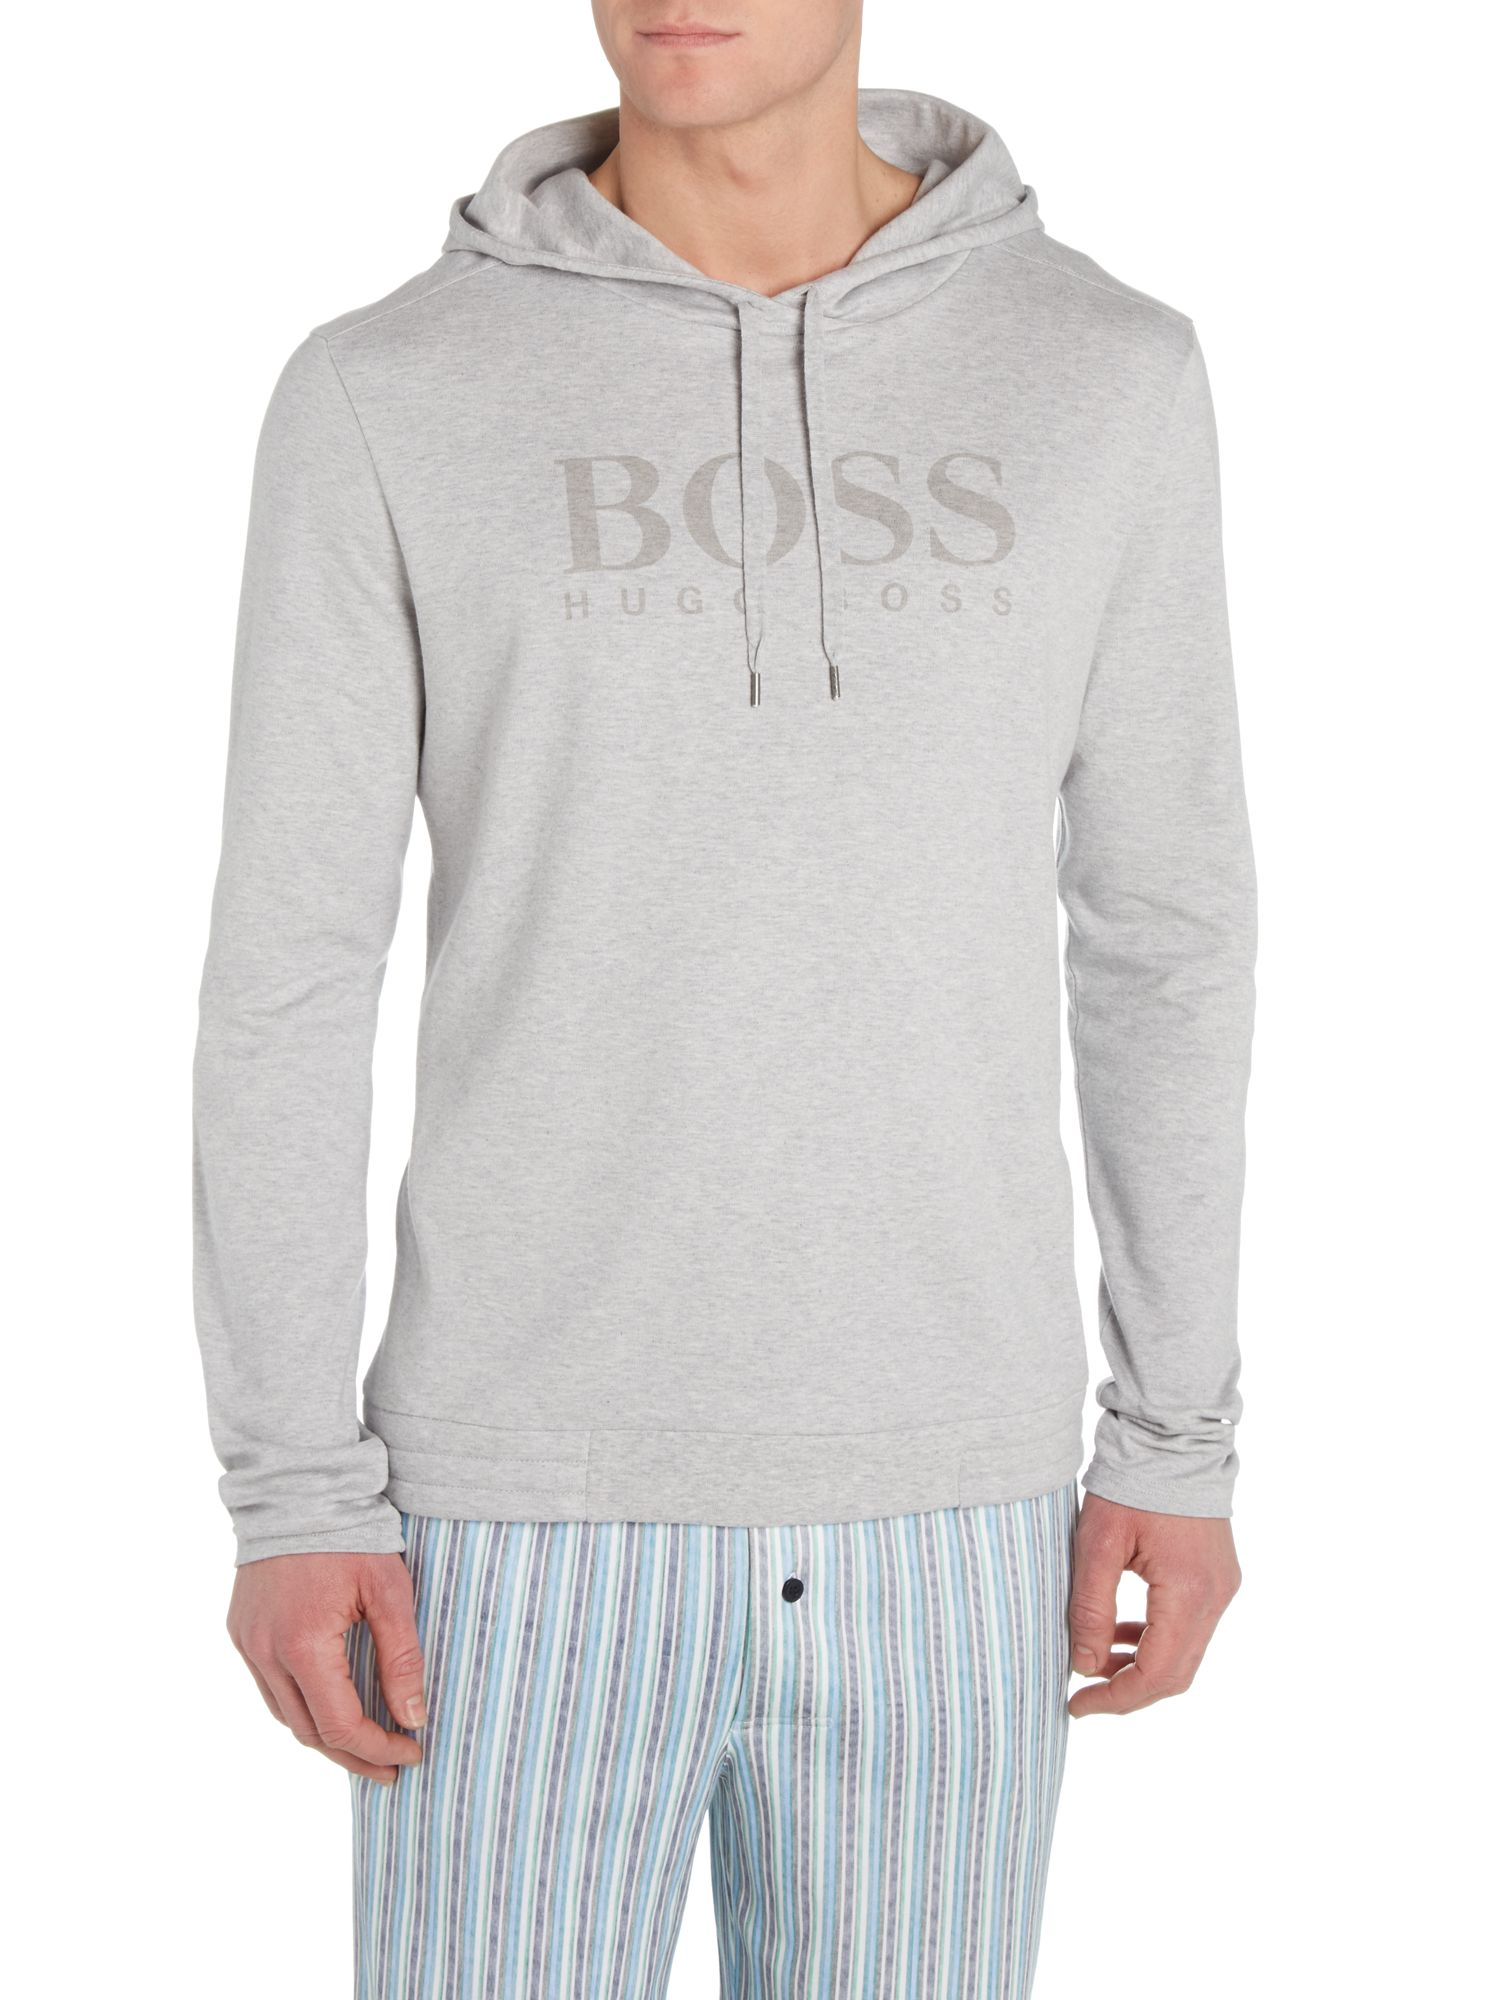 Logo hooded top